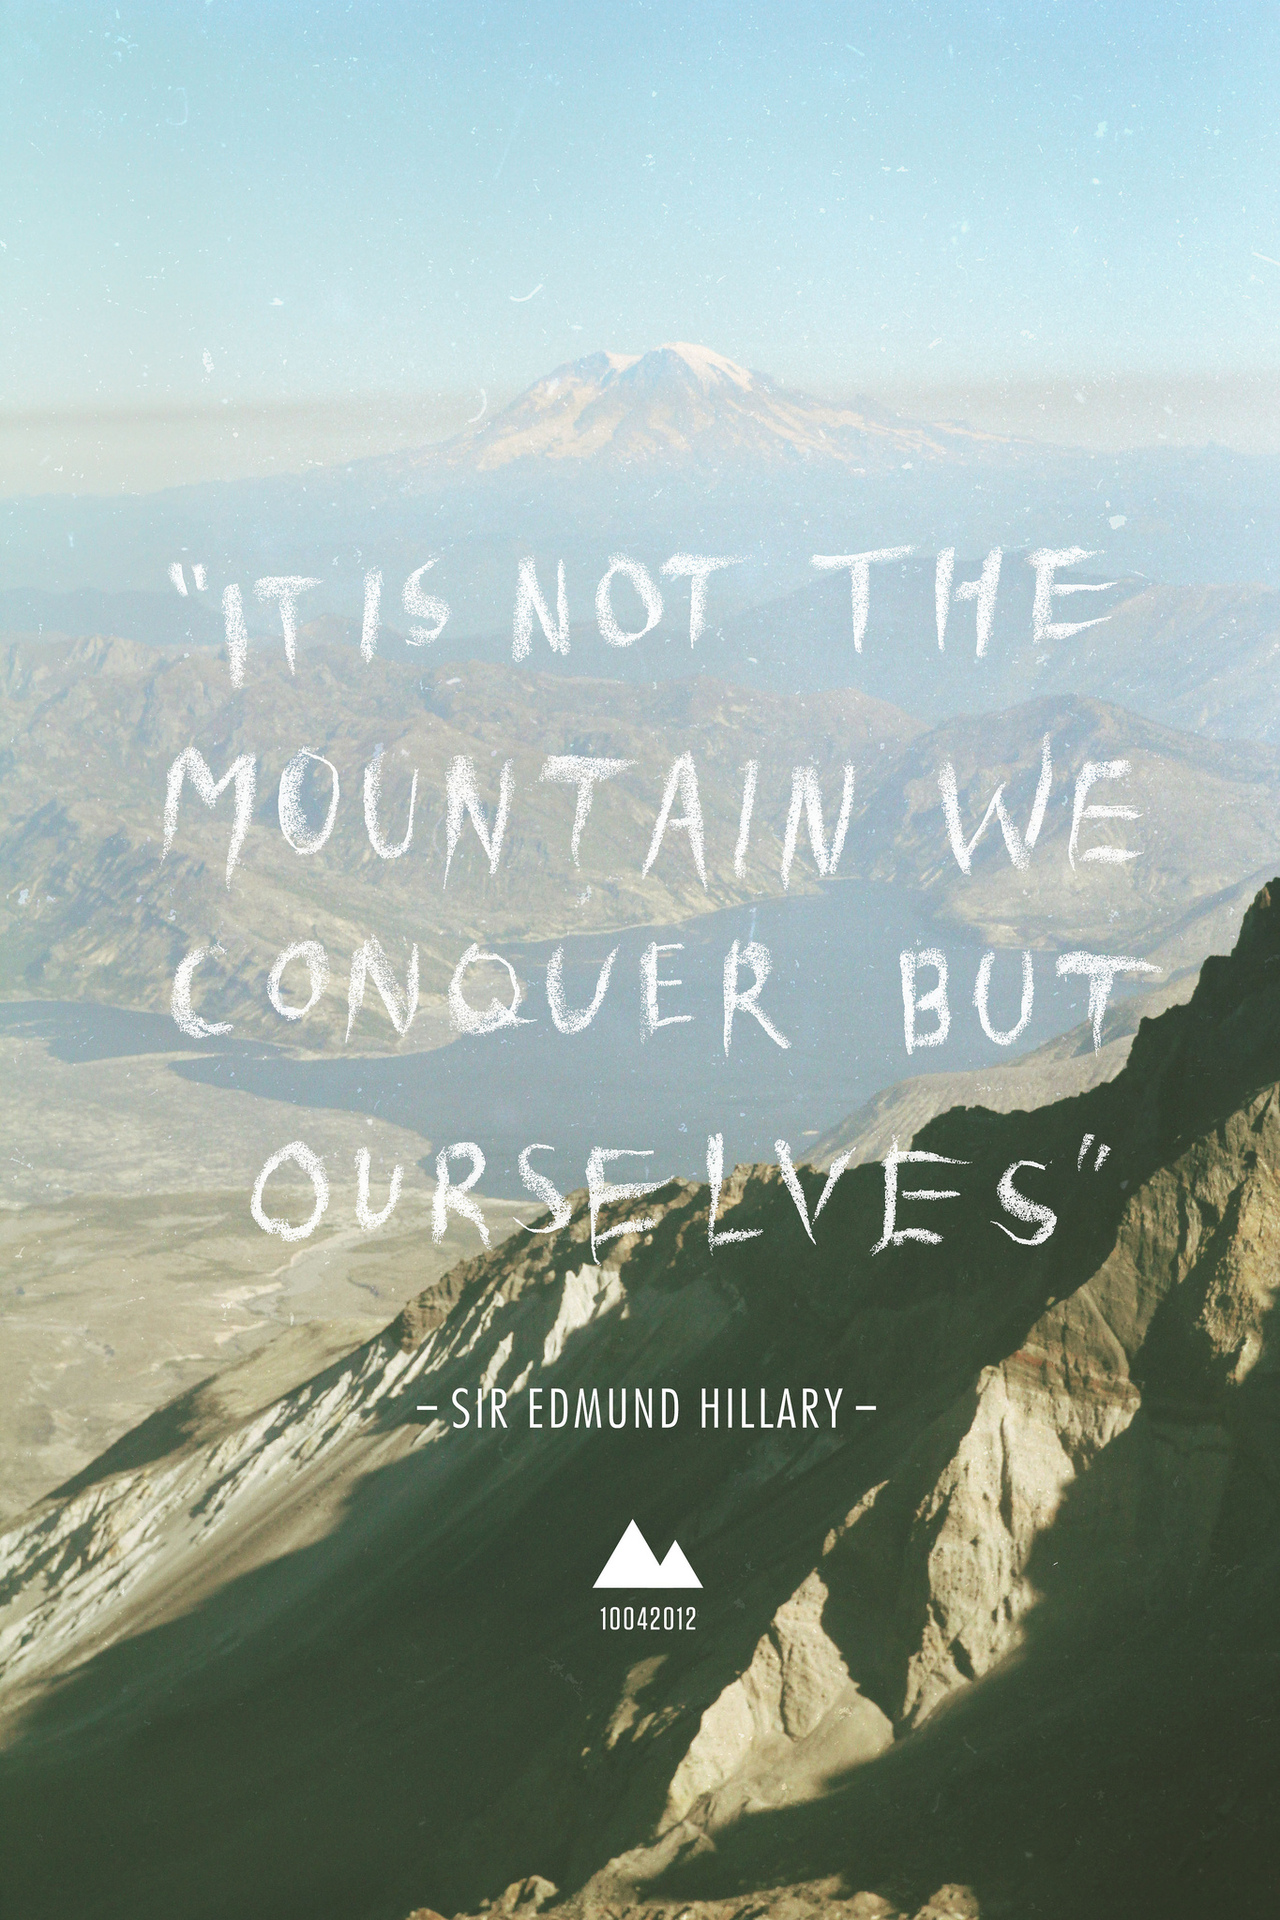 Design poster urging mountaineers preserve pristine glory mountainsides - Quotes About Mount